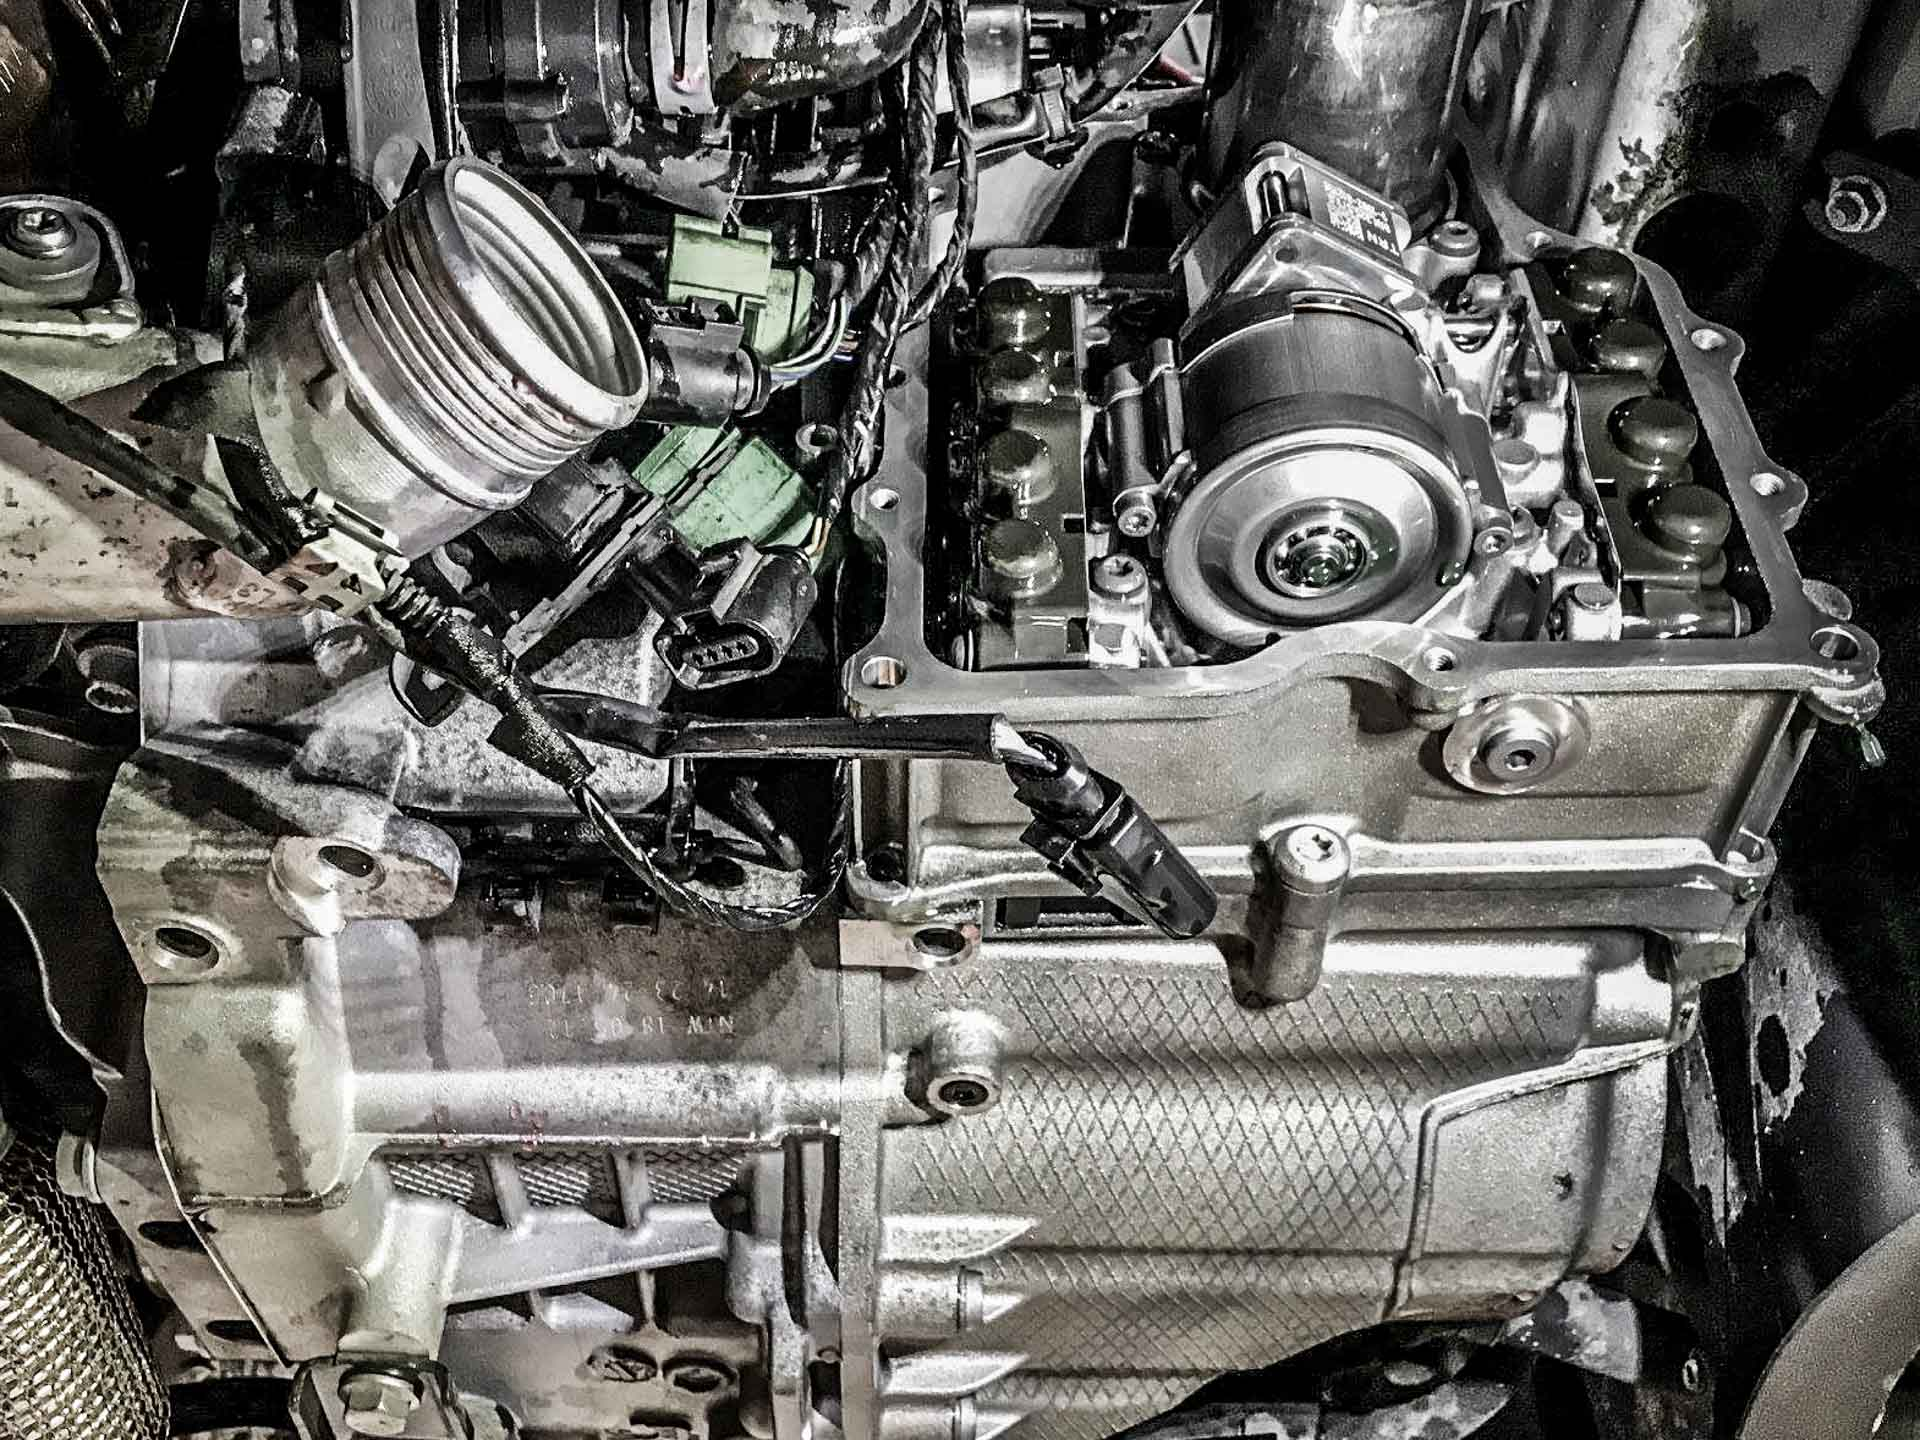 DSG Transmission Repair / Rebuild / Diagnostics 4 DSG Transmission Repair / Rebuild / Diagnostics Is your Audi or VW gearbox shuddering, clunky, noisy or not shifting as it should?